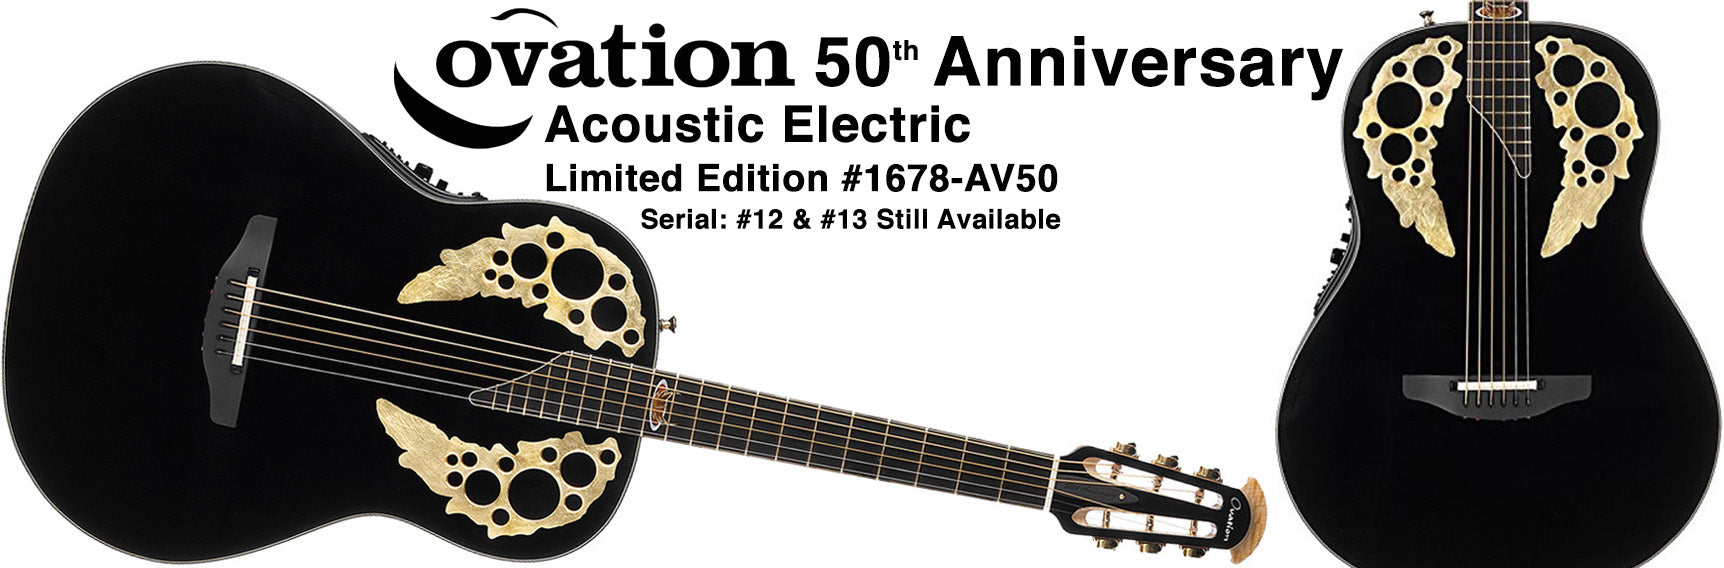 Ovation 50th Anniversary